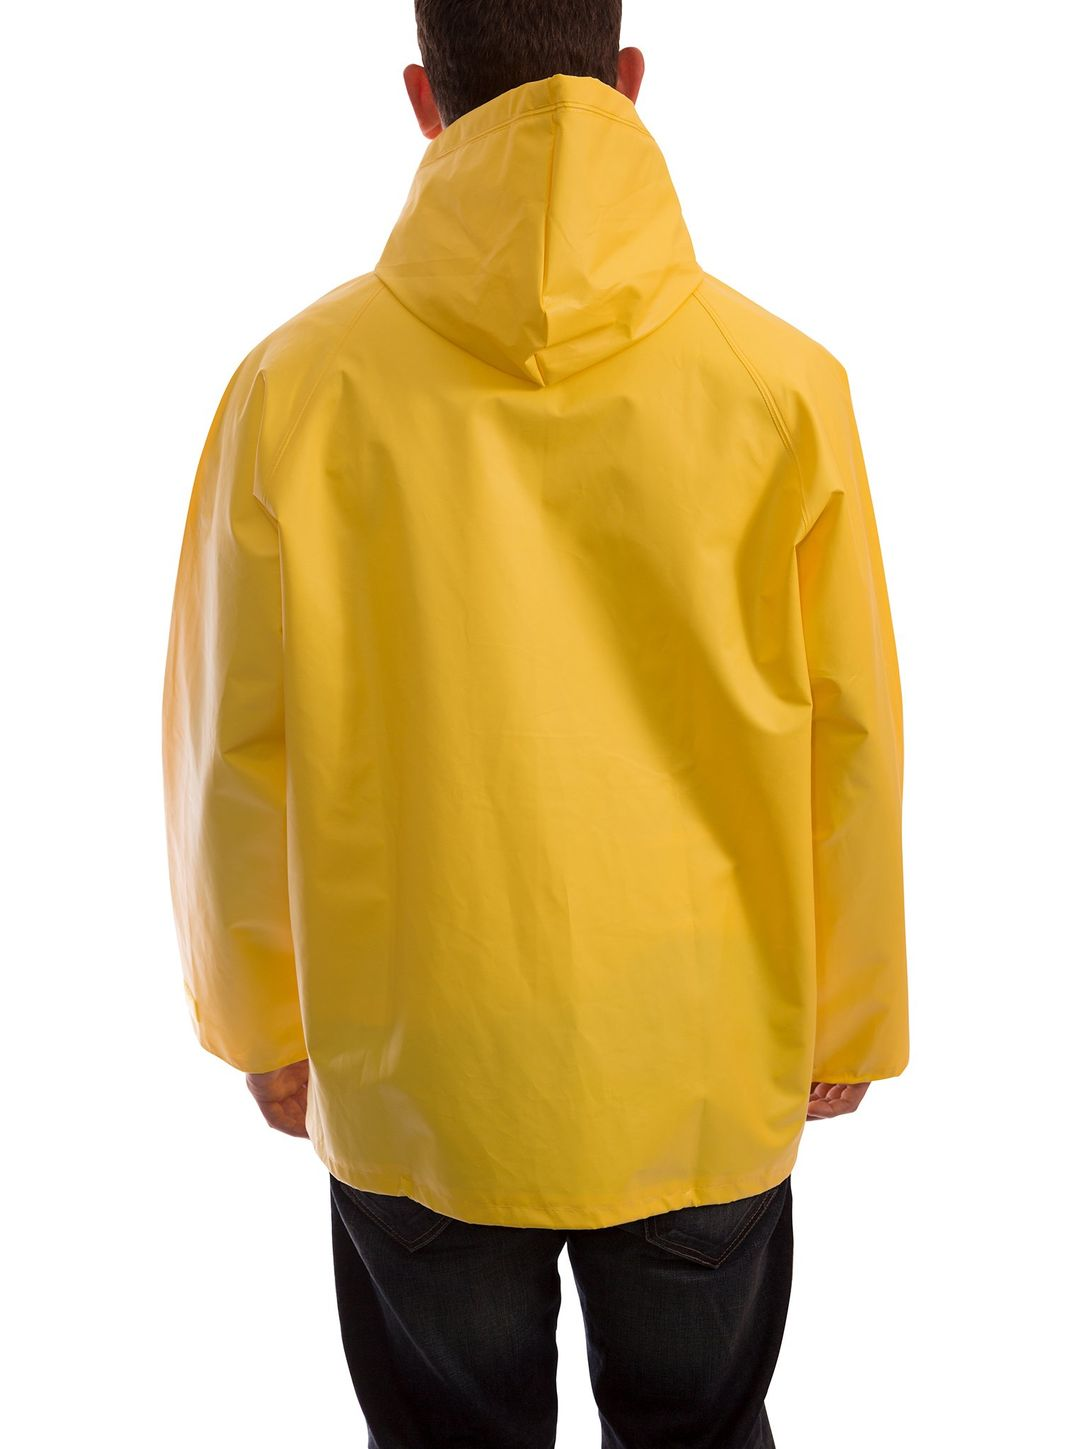 tingley-j56147-durablast-fire-resistant-jacket-pvc-coated-chemical-resistant-with-attached-hood-back.jpg